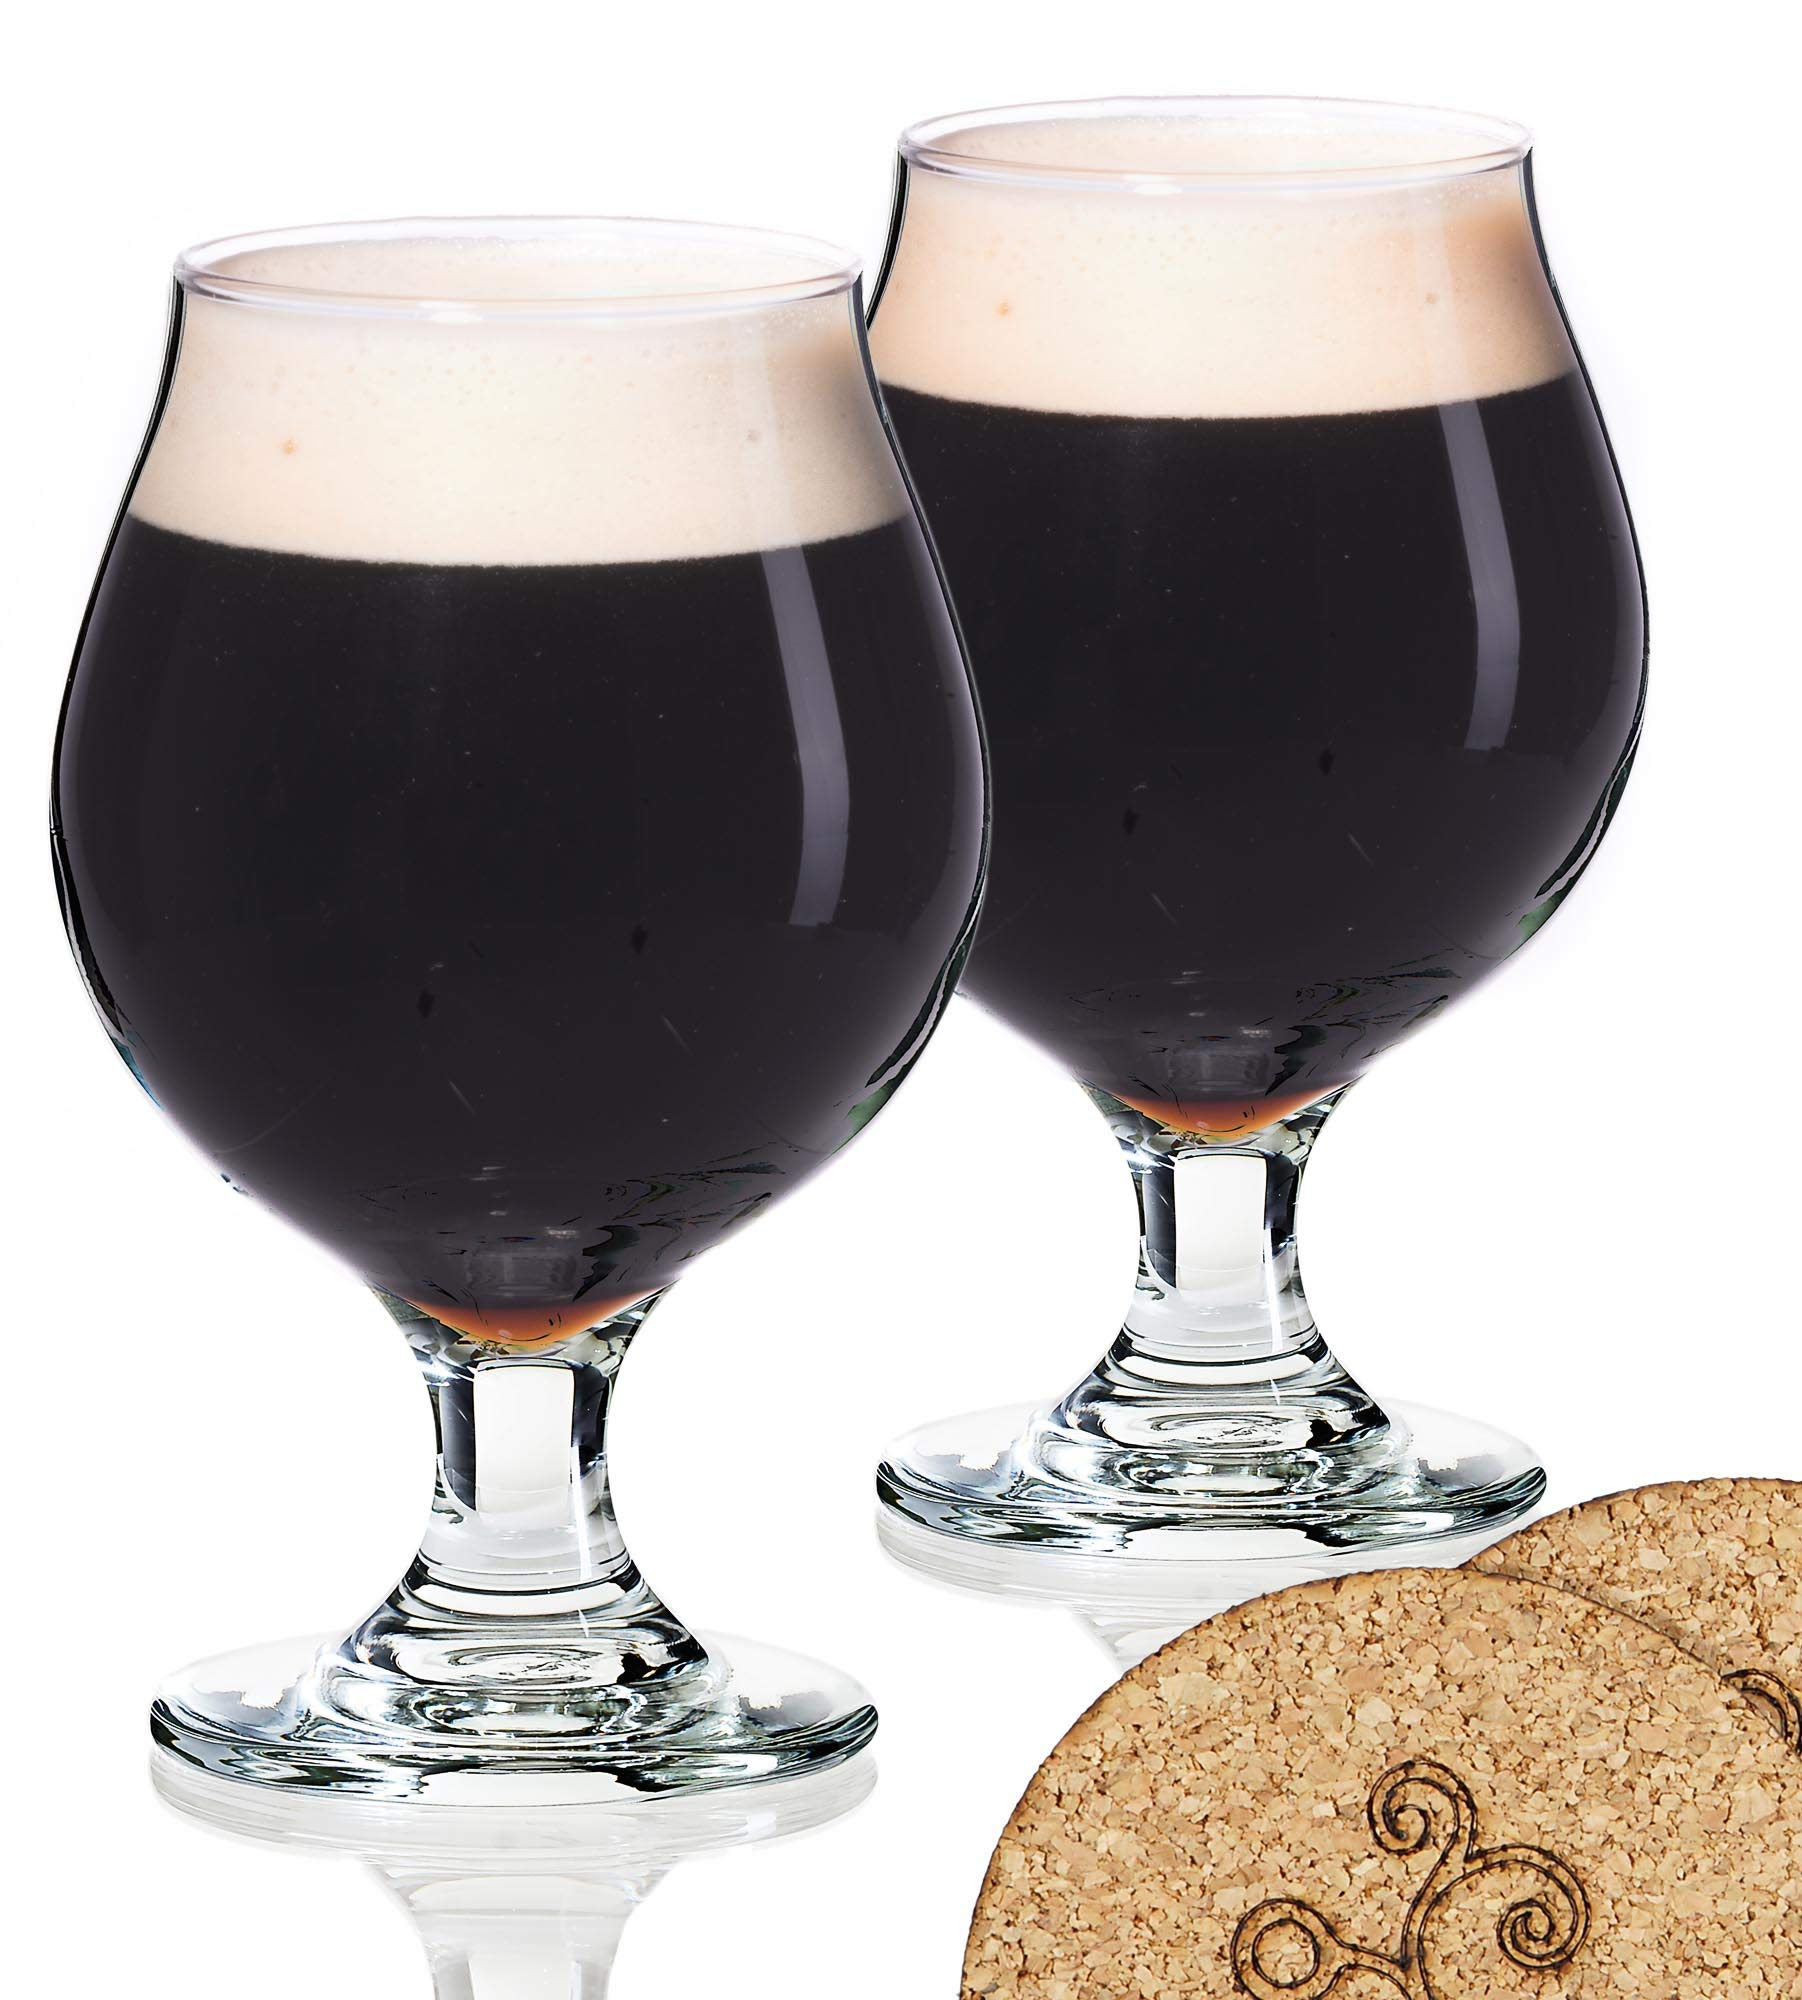 2 Libbey Beer Glasses Belgian Style Stemmed Tulip - 16 oz Lambic Ale Dark Beer Glass - set of 2 w/coasters – Classic Premium Glassware - Birthday Housewarming Bachelor party gift for men idea